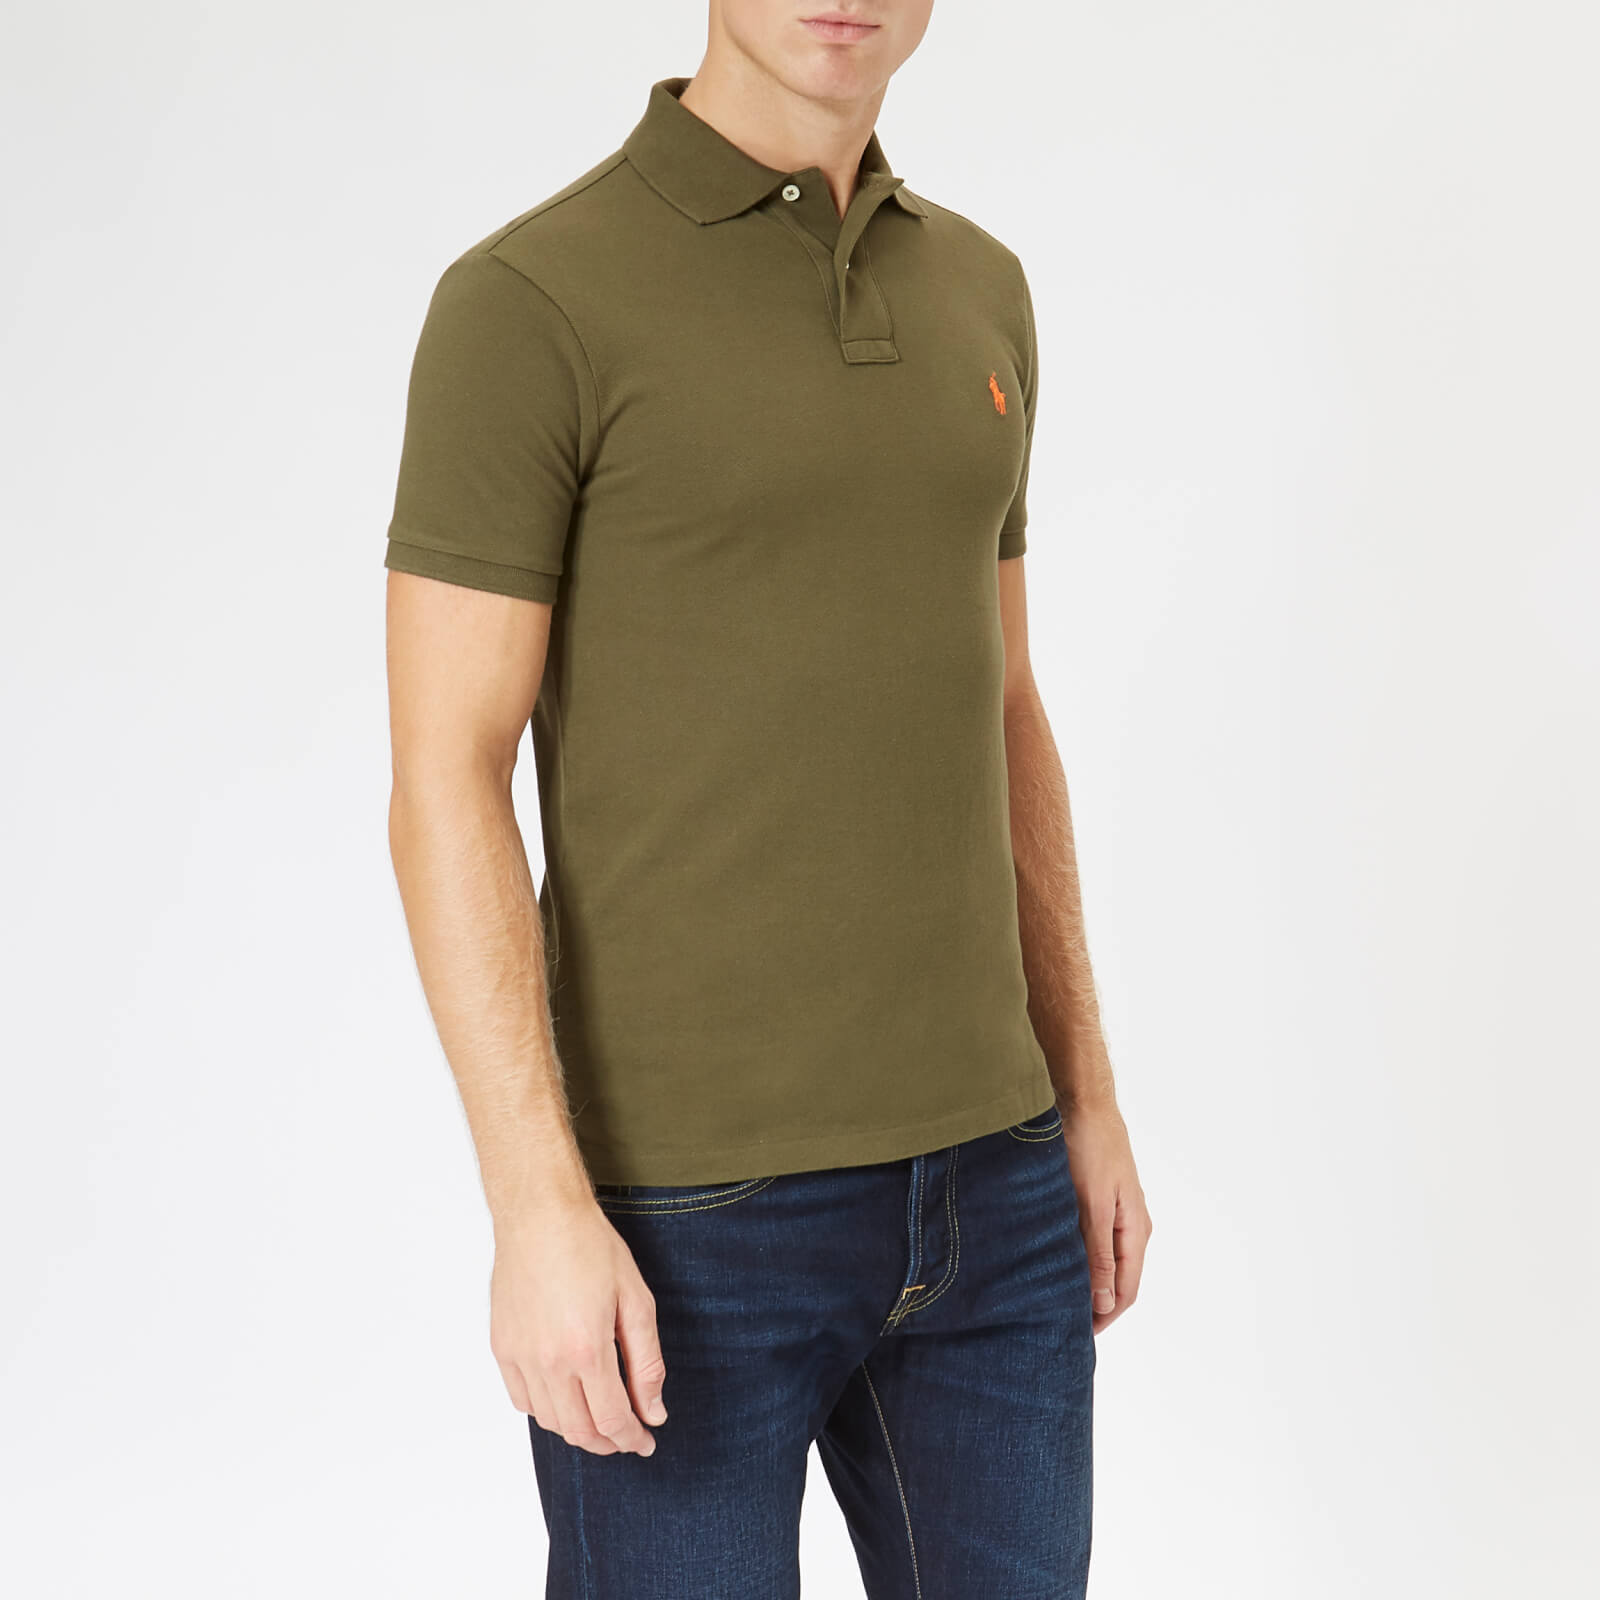 e55c75e094d9 Polo Ralph Lauren Men s Slim Fit Short Sleeve Polo Shirt - Expedition Olive  - Free UK Delivery over £50